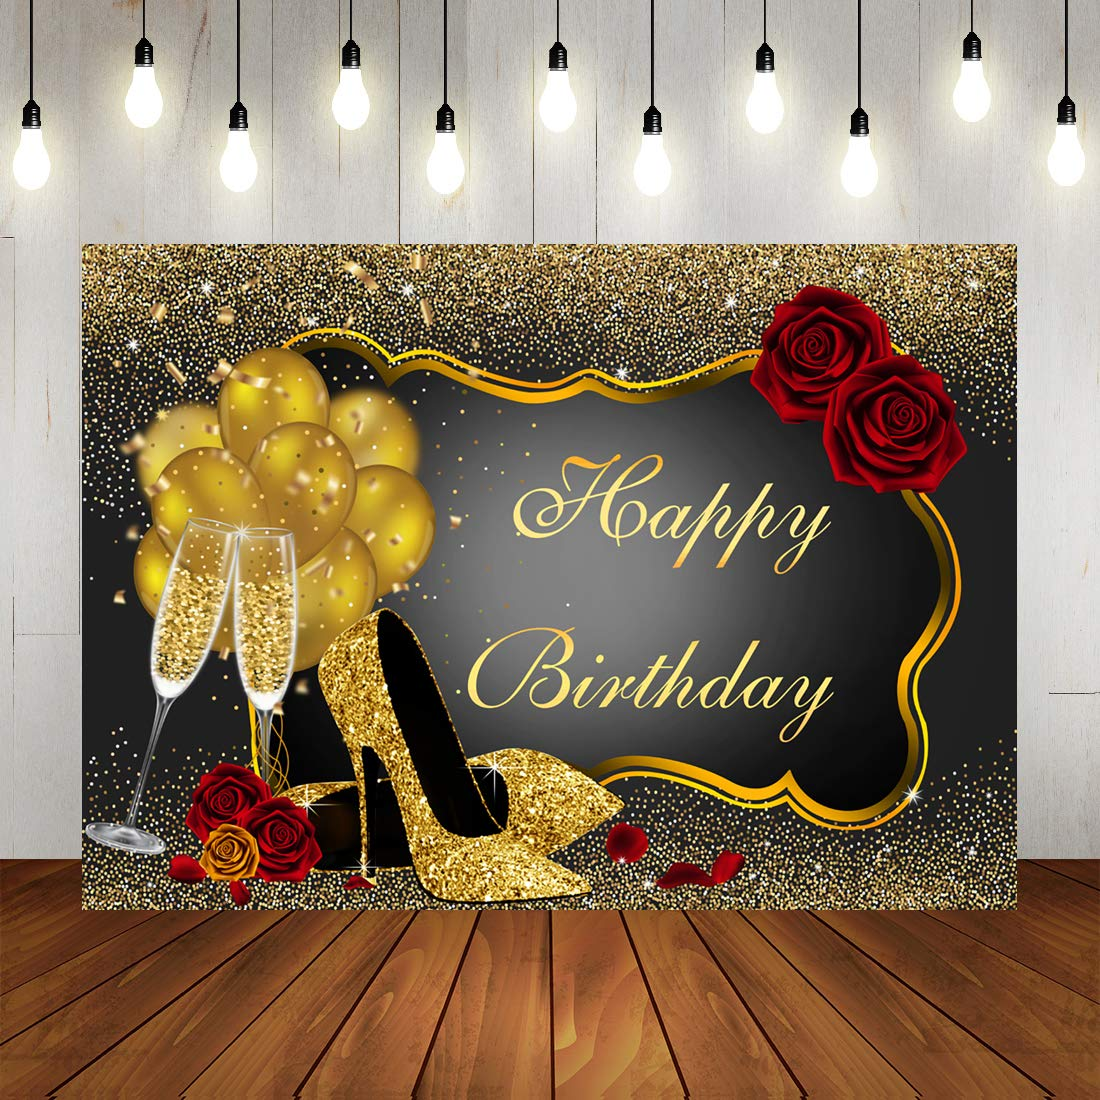 Glitter Gold Happy Birthday Backdrop Red Rose Floral Golden Balloons Heels Champagne Glass Background for Women Birthday Party Decorations Birthday Party Supplies 7x5ft Vinyl by LoveInM